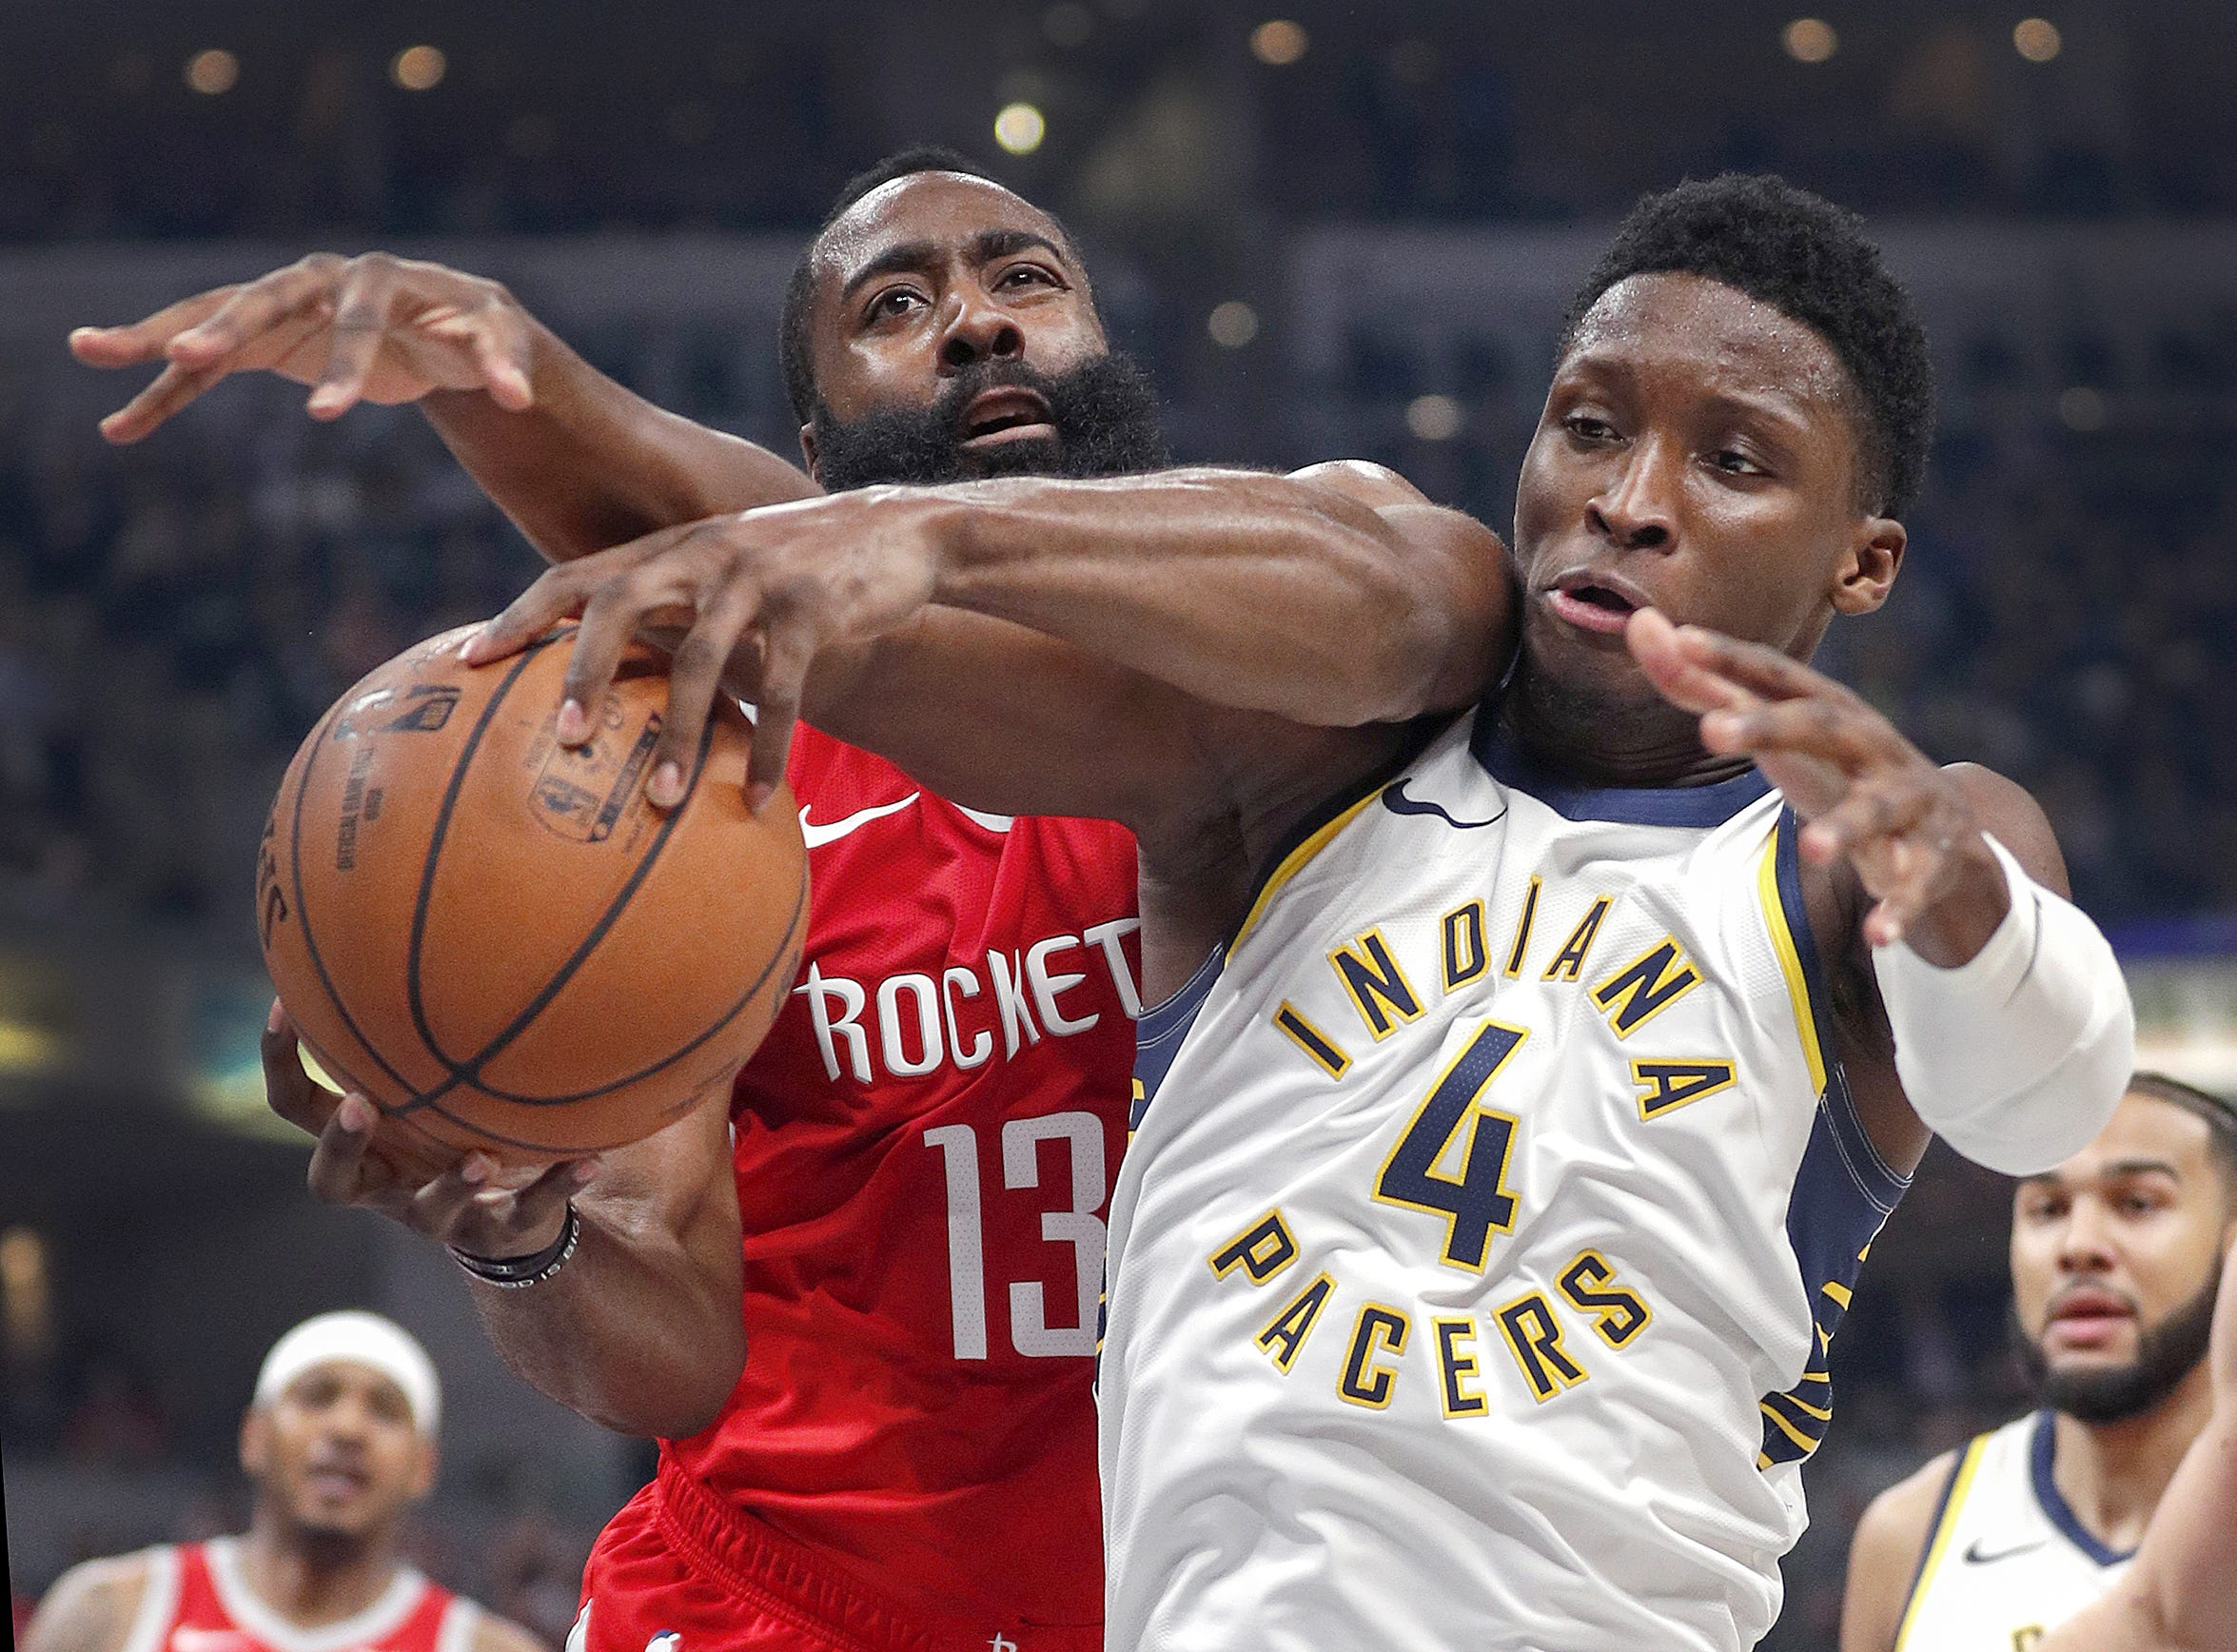 Indiana Pacers guard Victor Oladipo (4) and Houston Rockets guard James Harden (13) fight for a rebound in the first half of their game at Bankers Life Fieldhouse on Nov. 5, 2018.